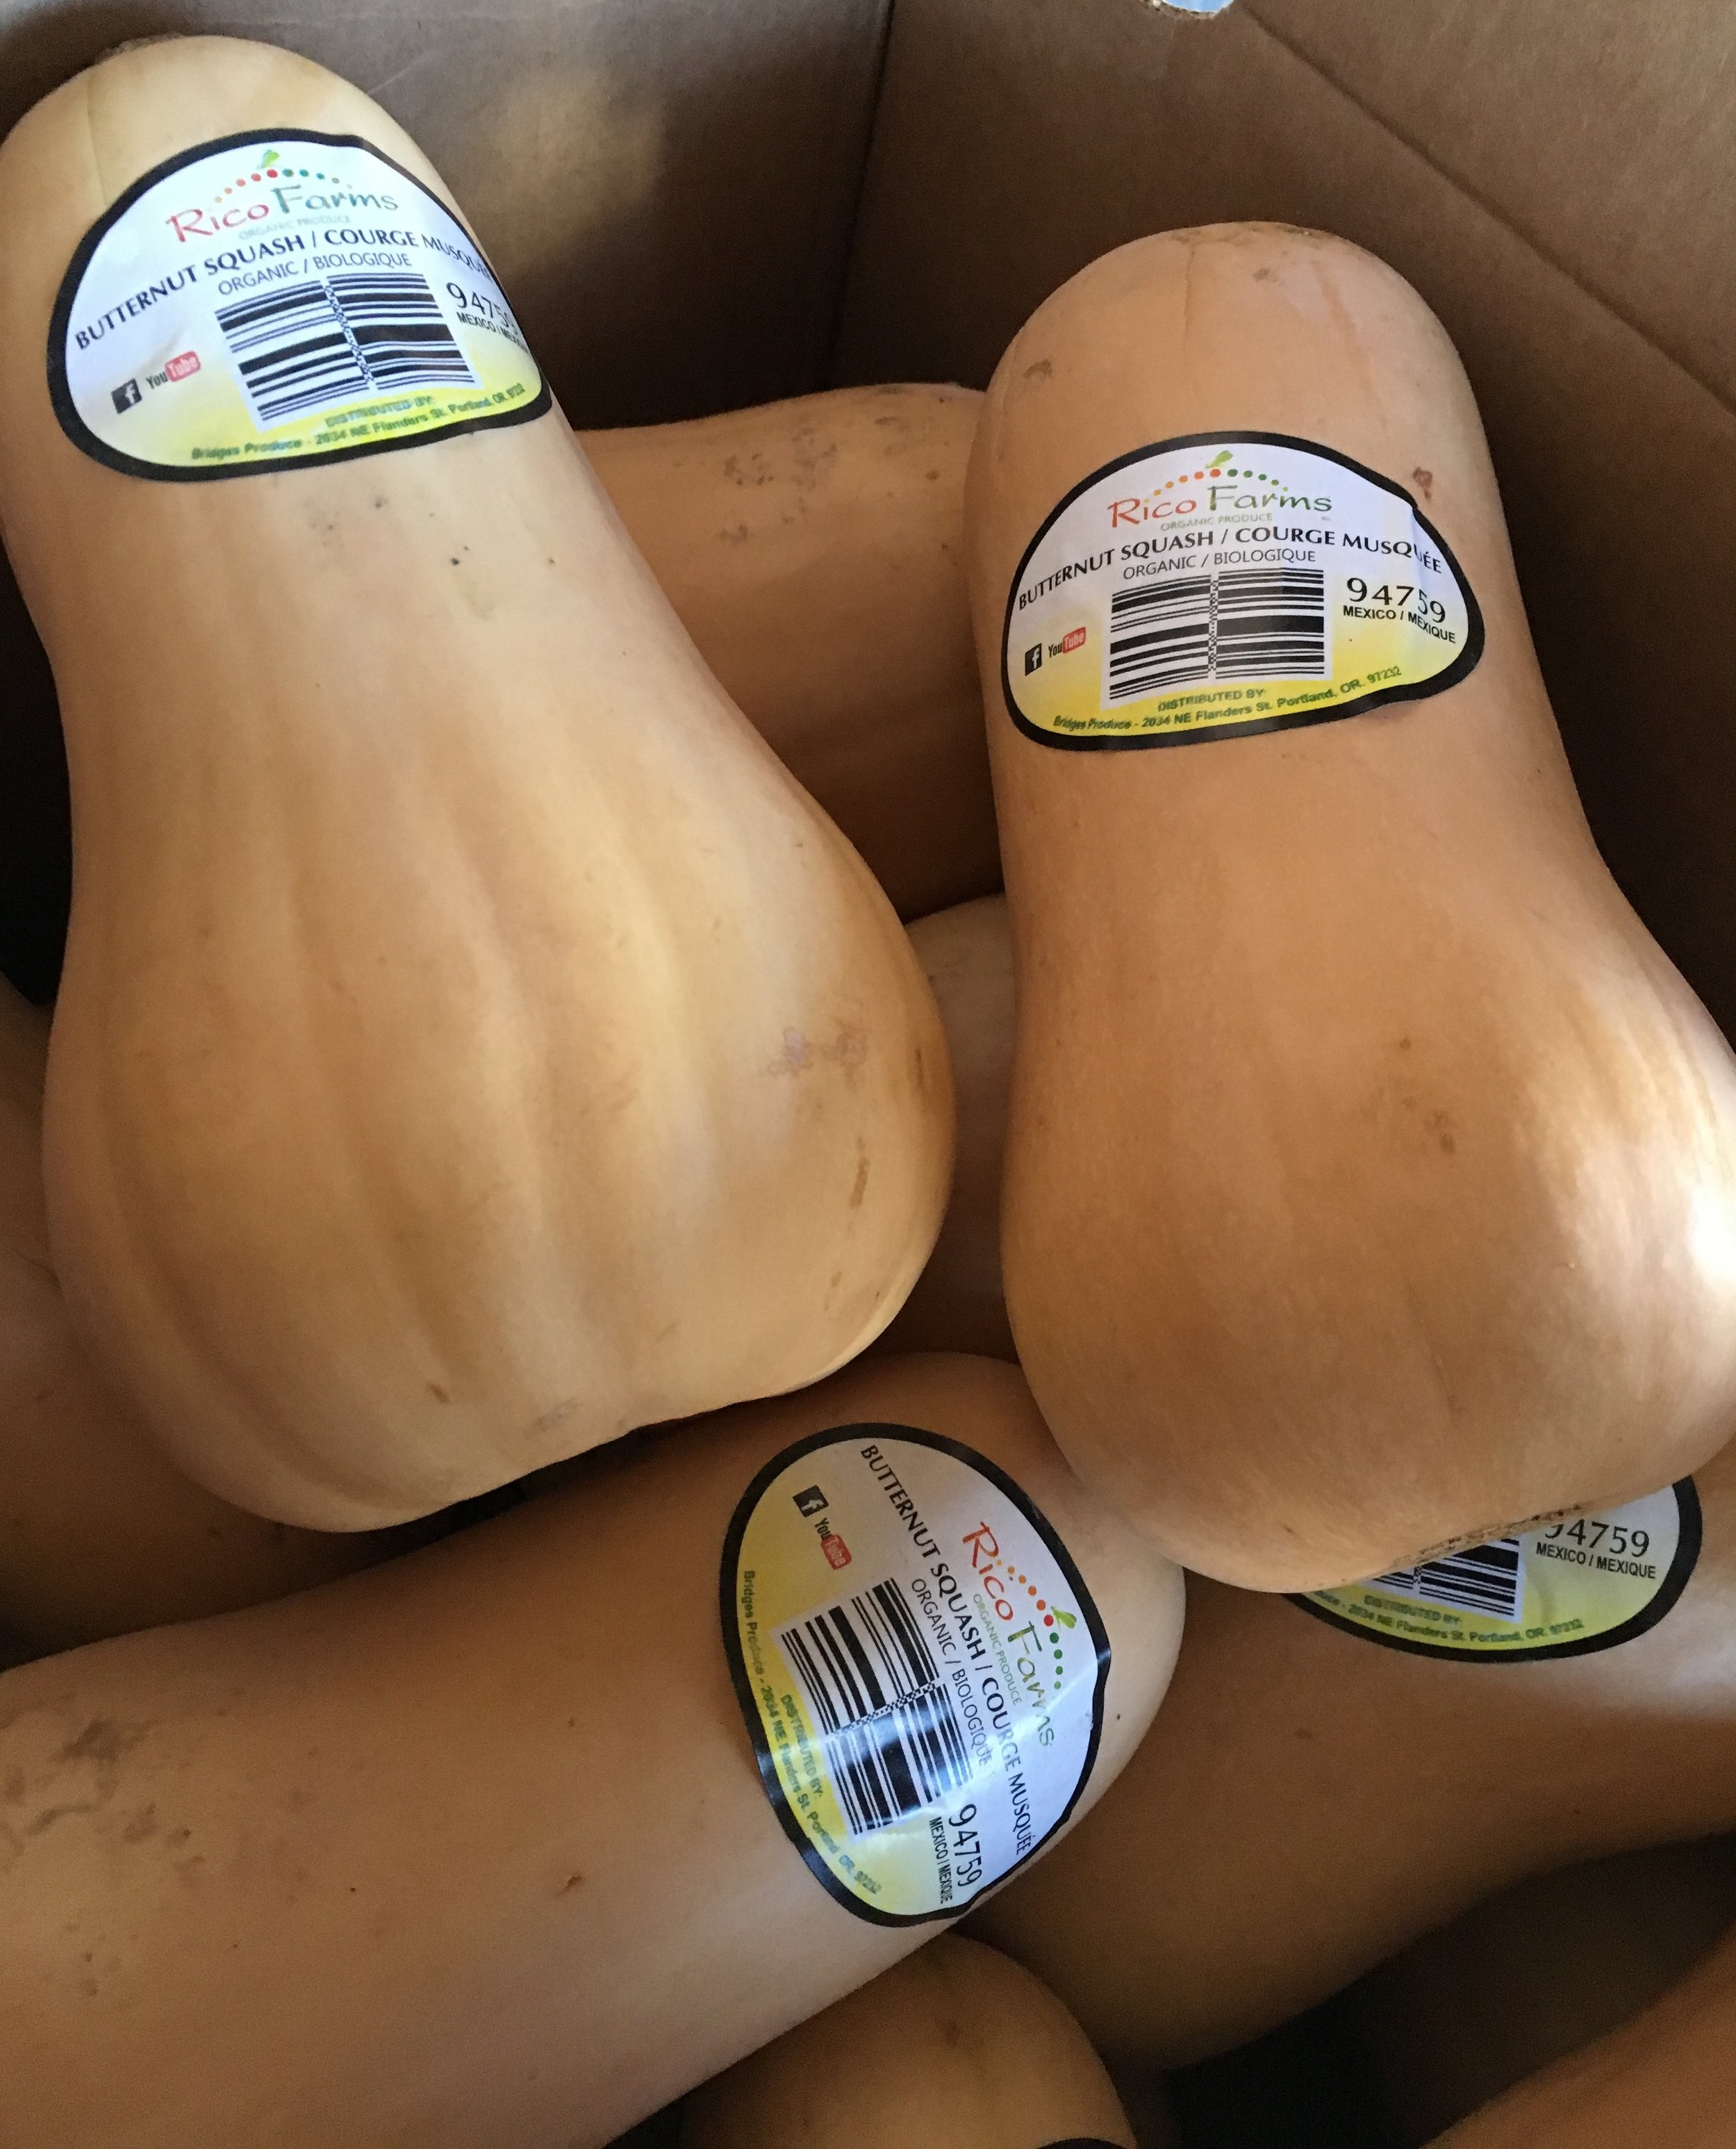 Organic butternut squash on special this week at Russo's.